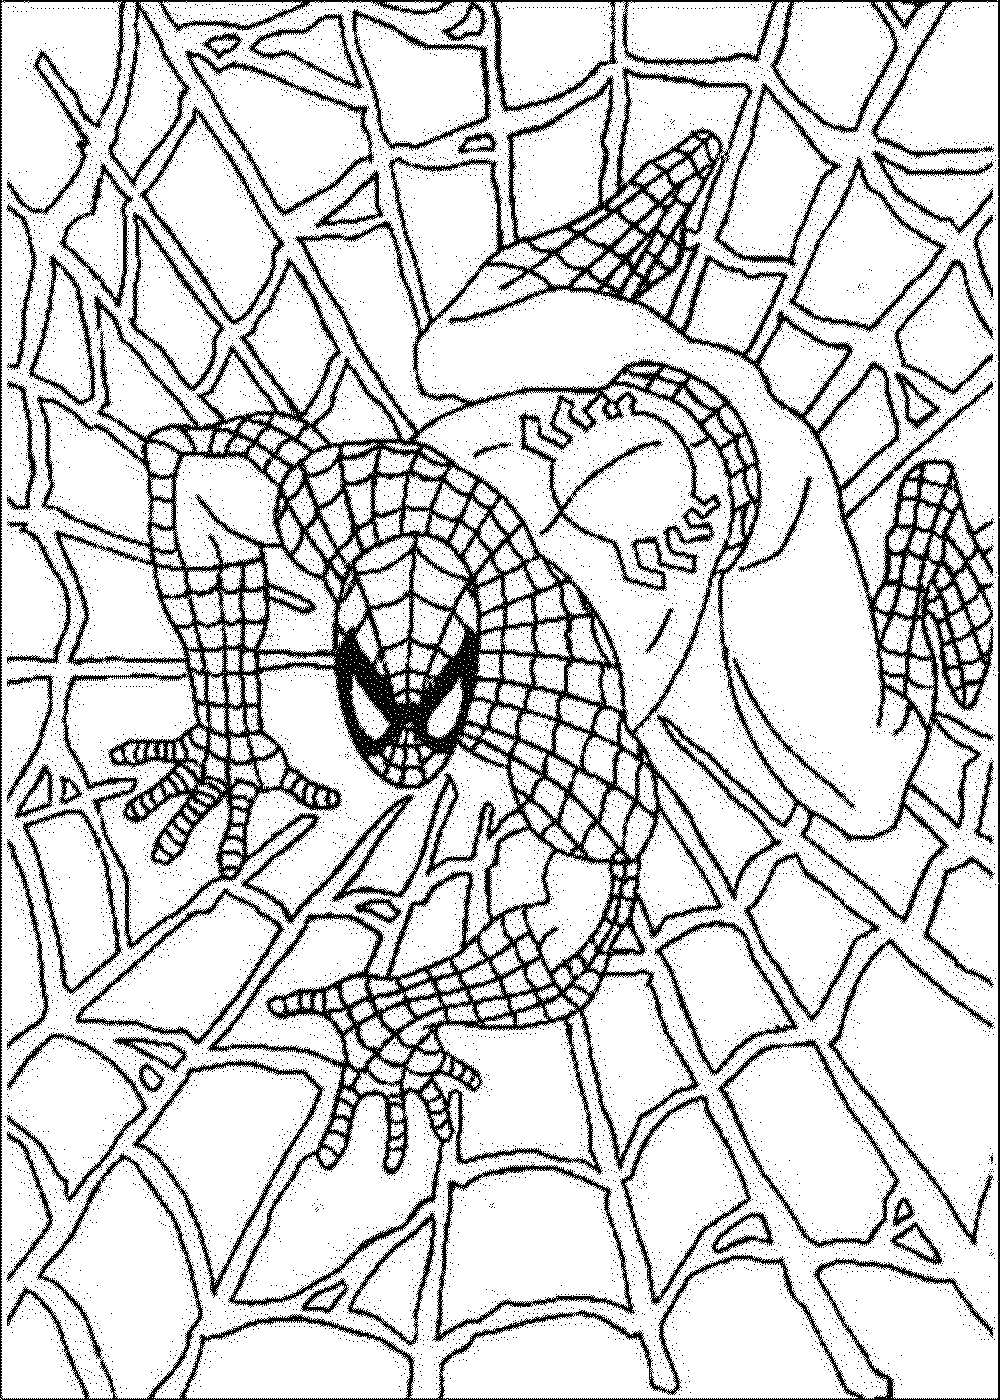 spiderman color pages print out | Målarbok för barn/Coloring book ...